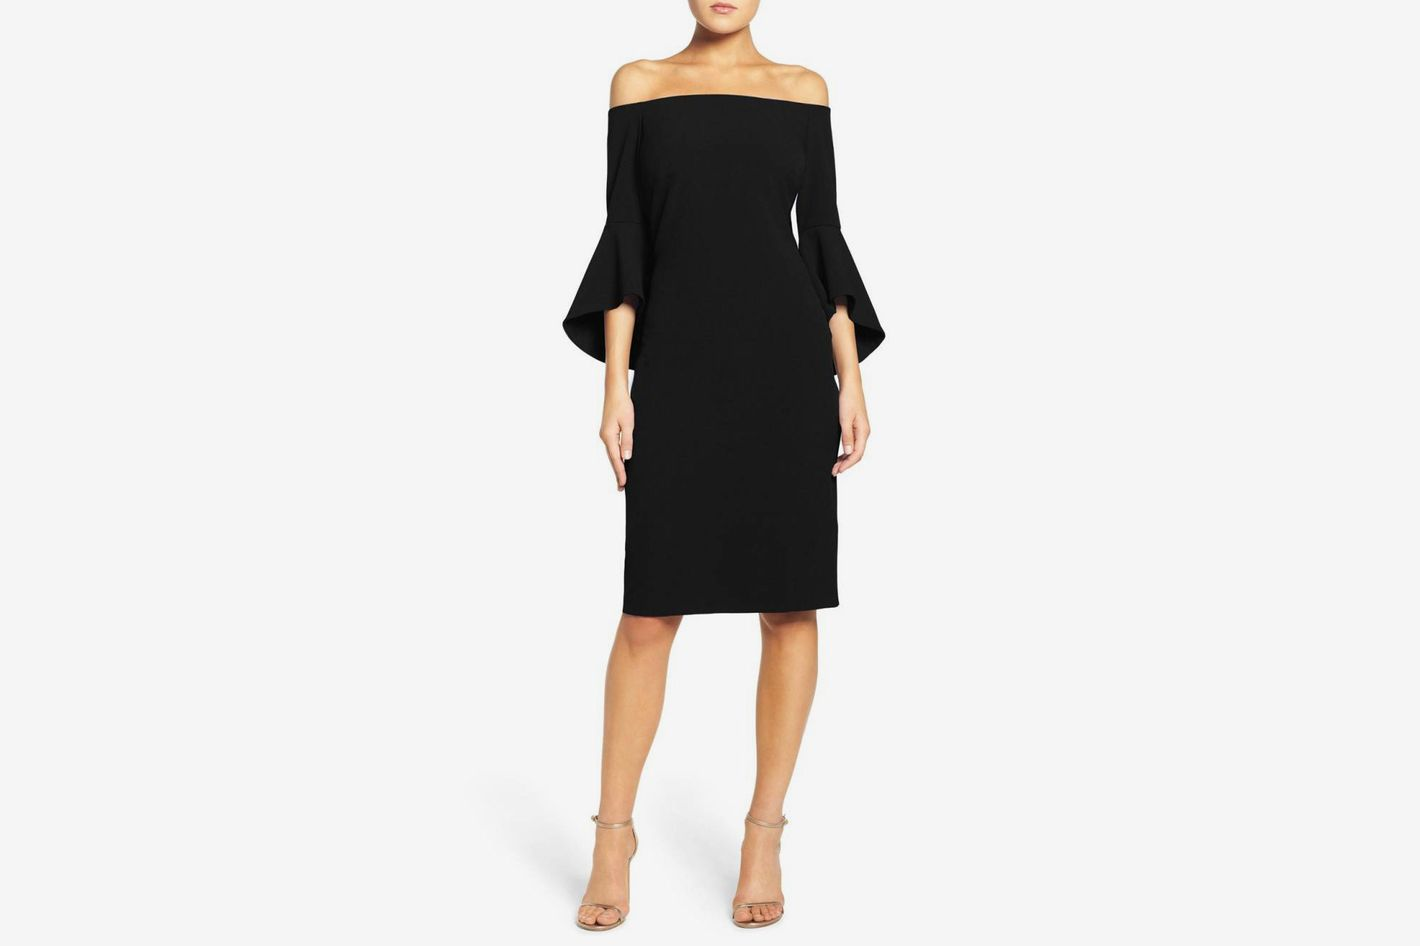 Chelsea28 Off the Shoulder Dress